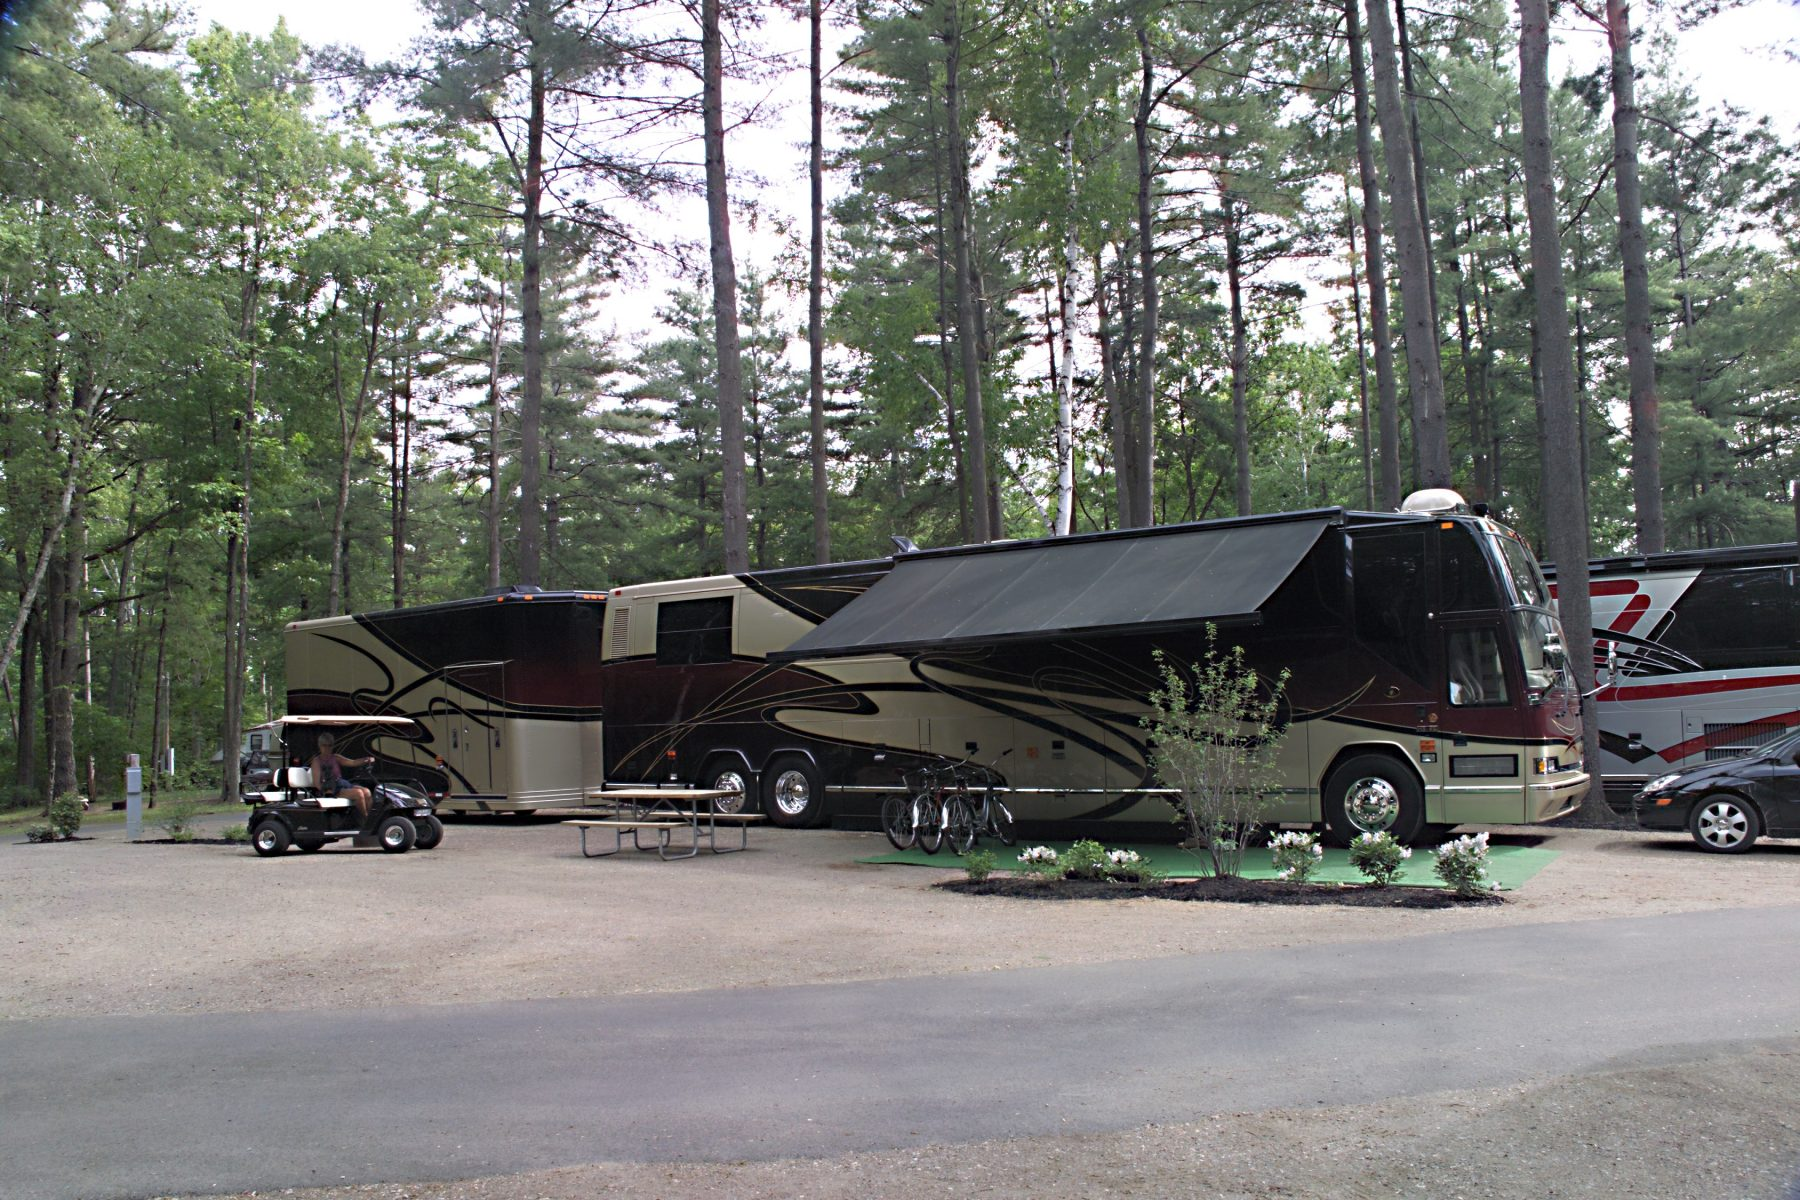 Flat sites that are sure to fit various RV types and lengths